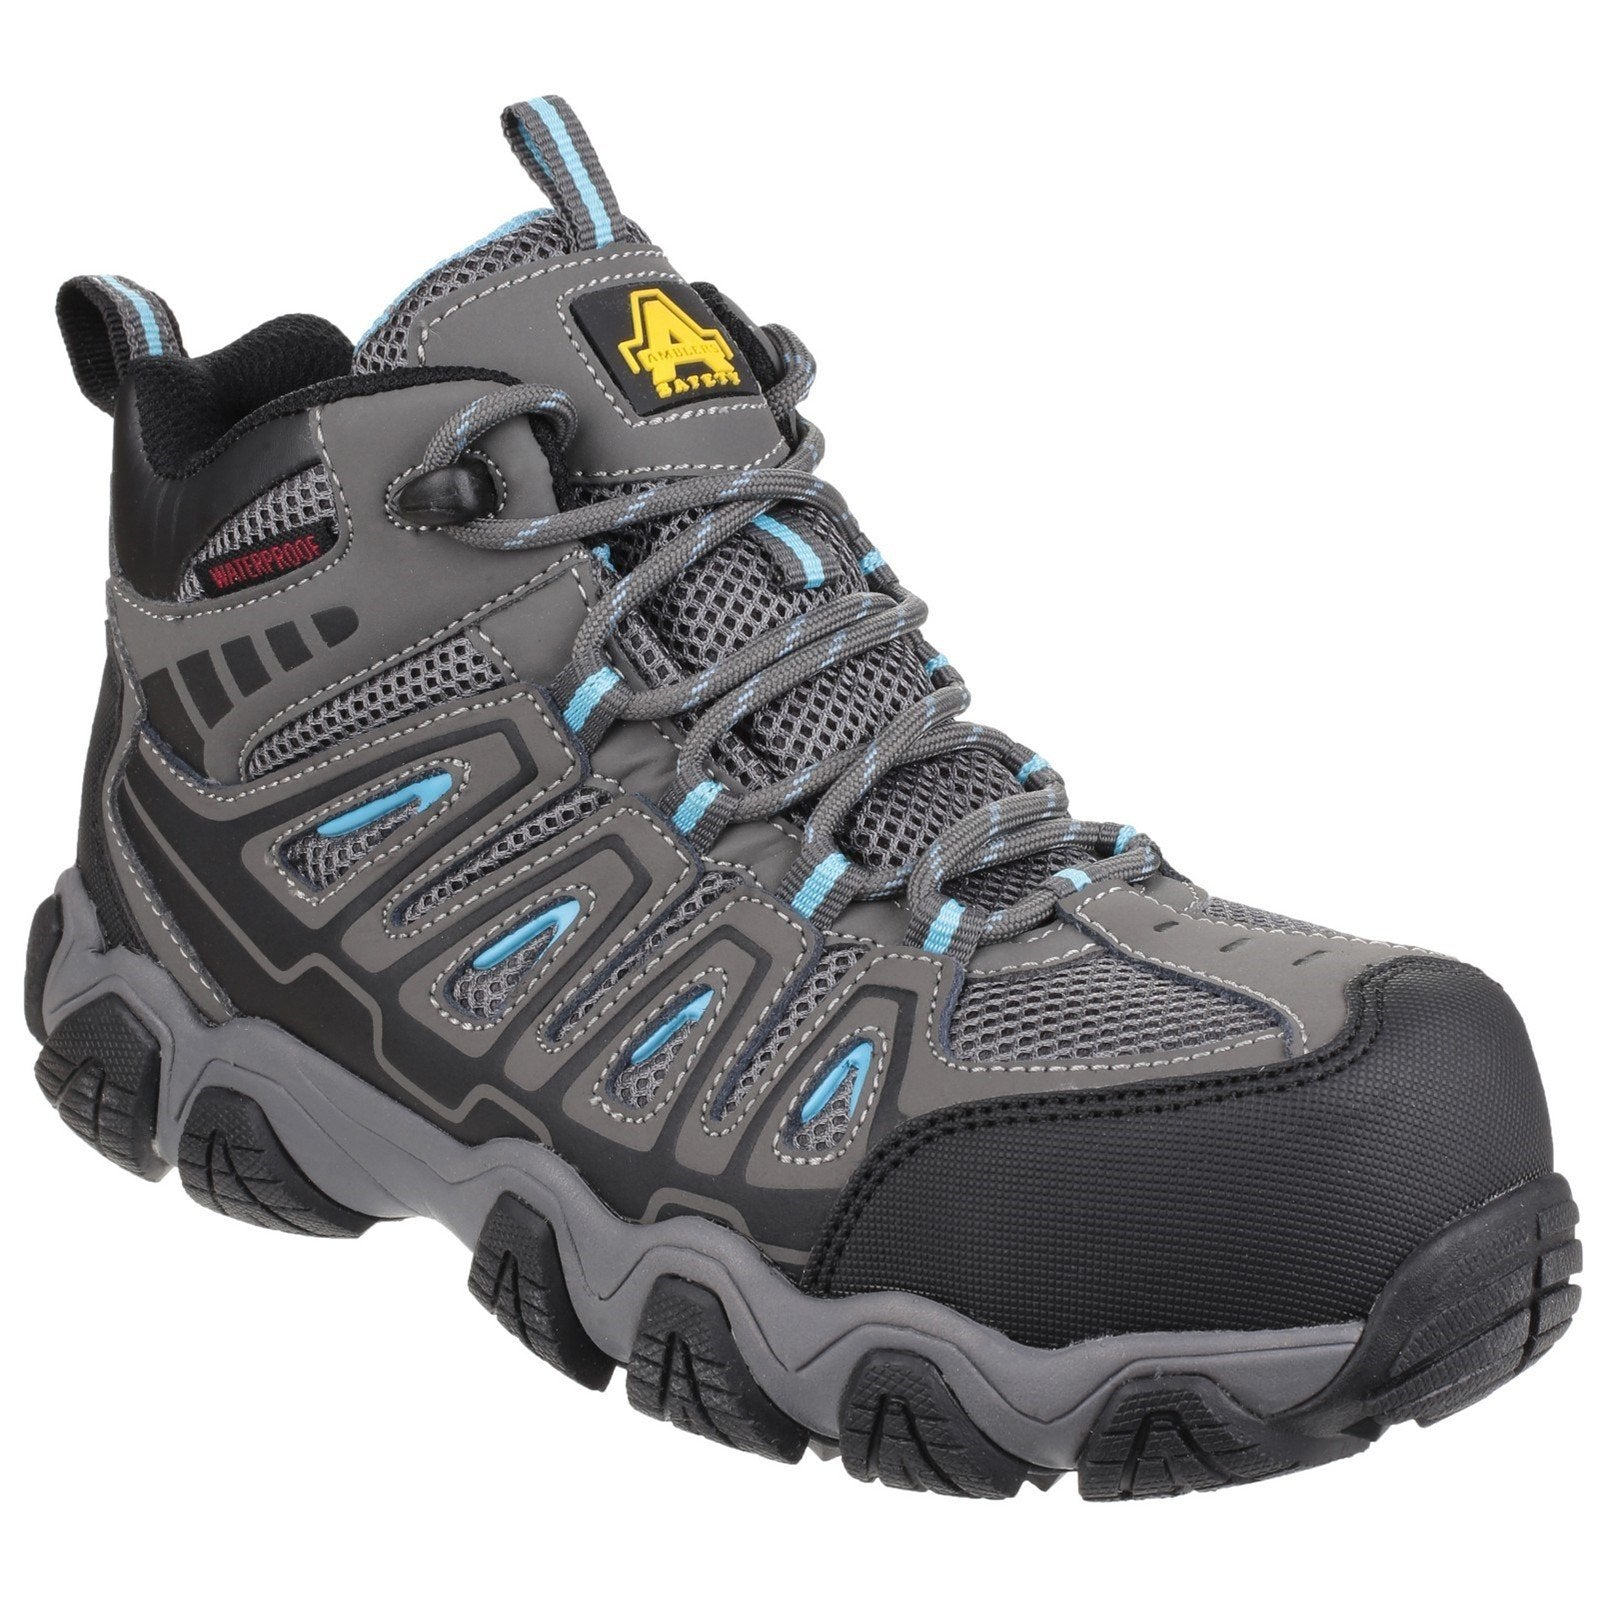 Amblers Ladies Safety Hiking Boots